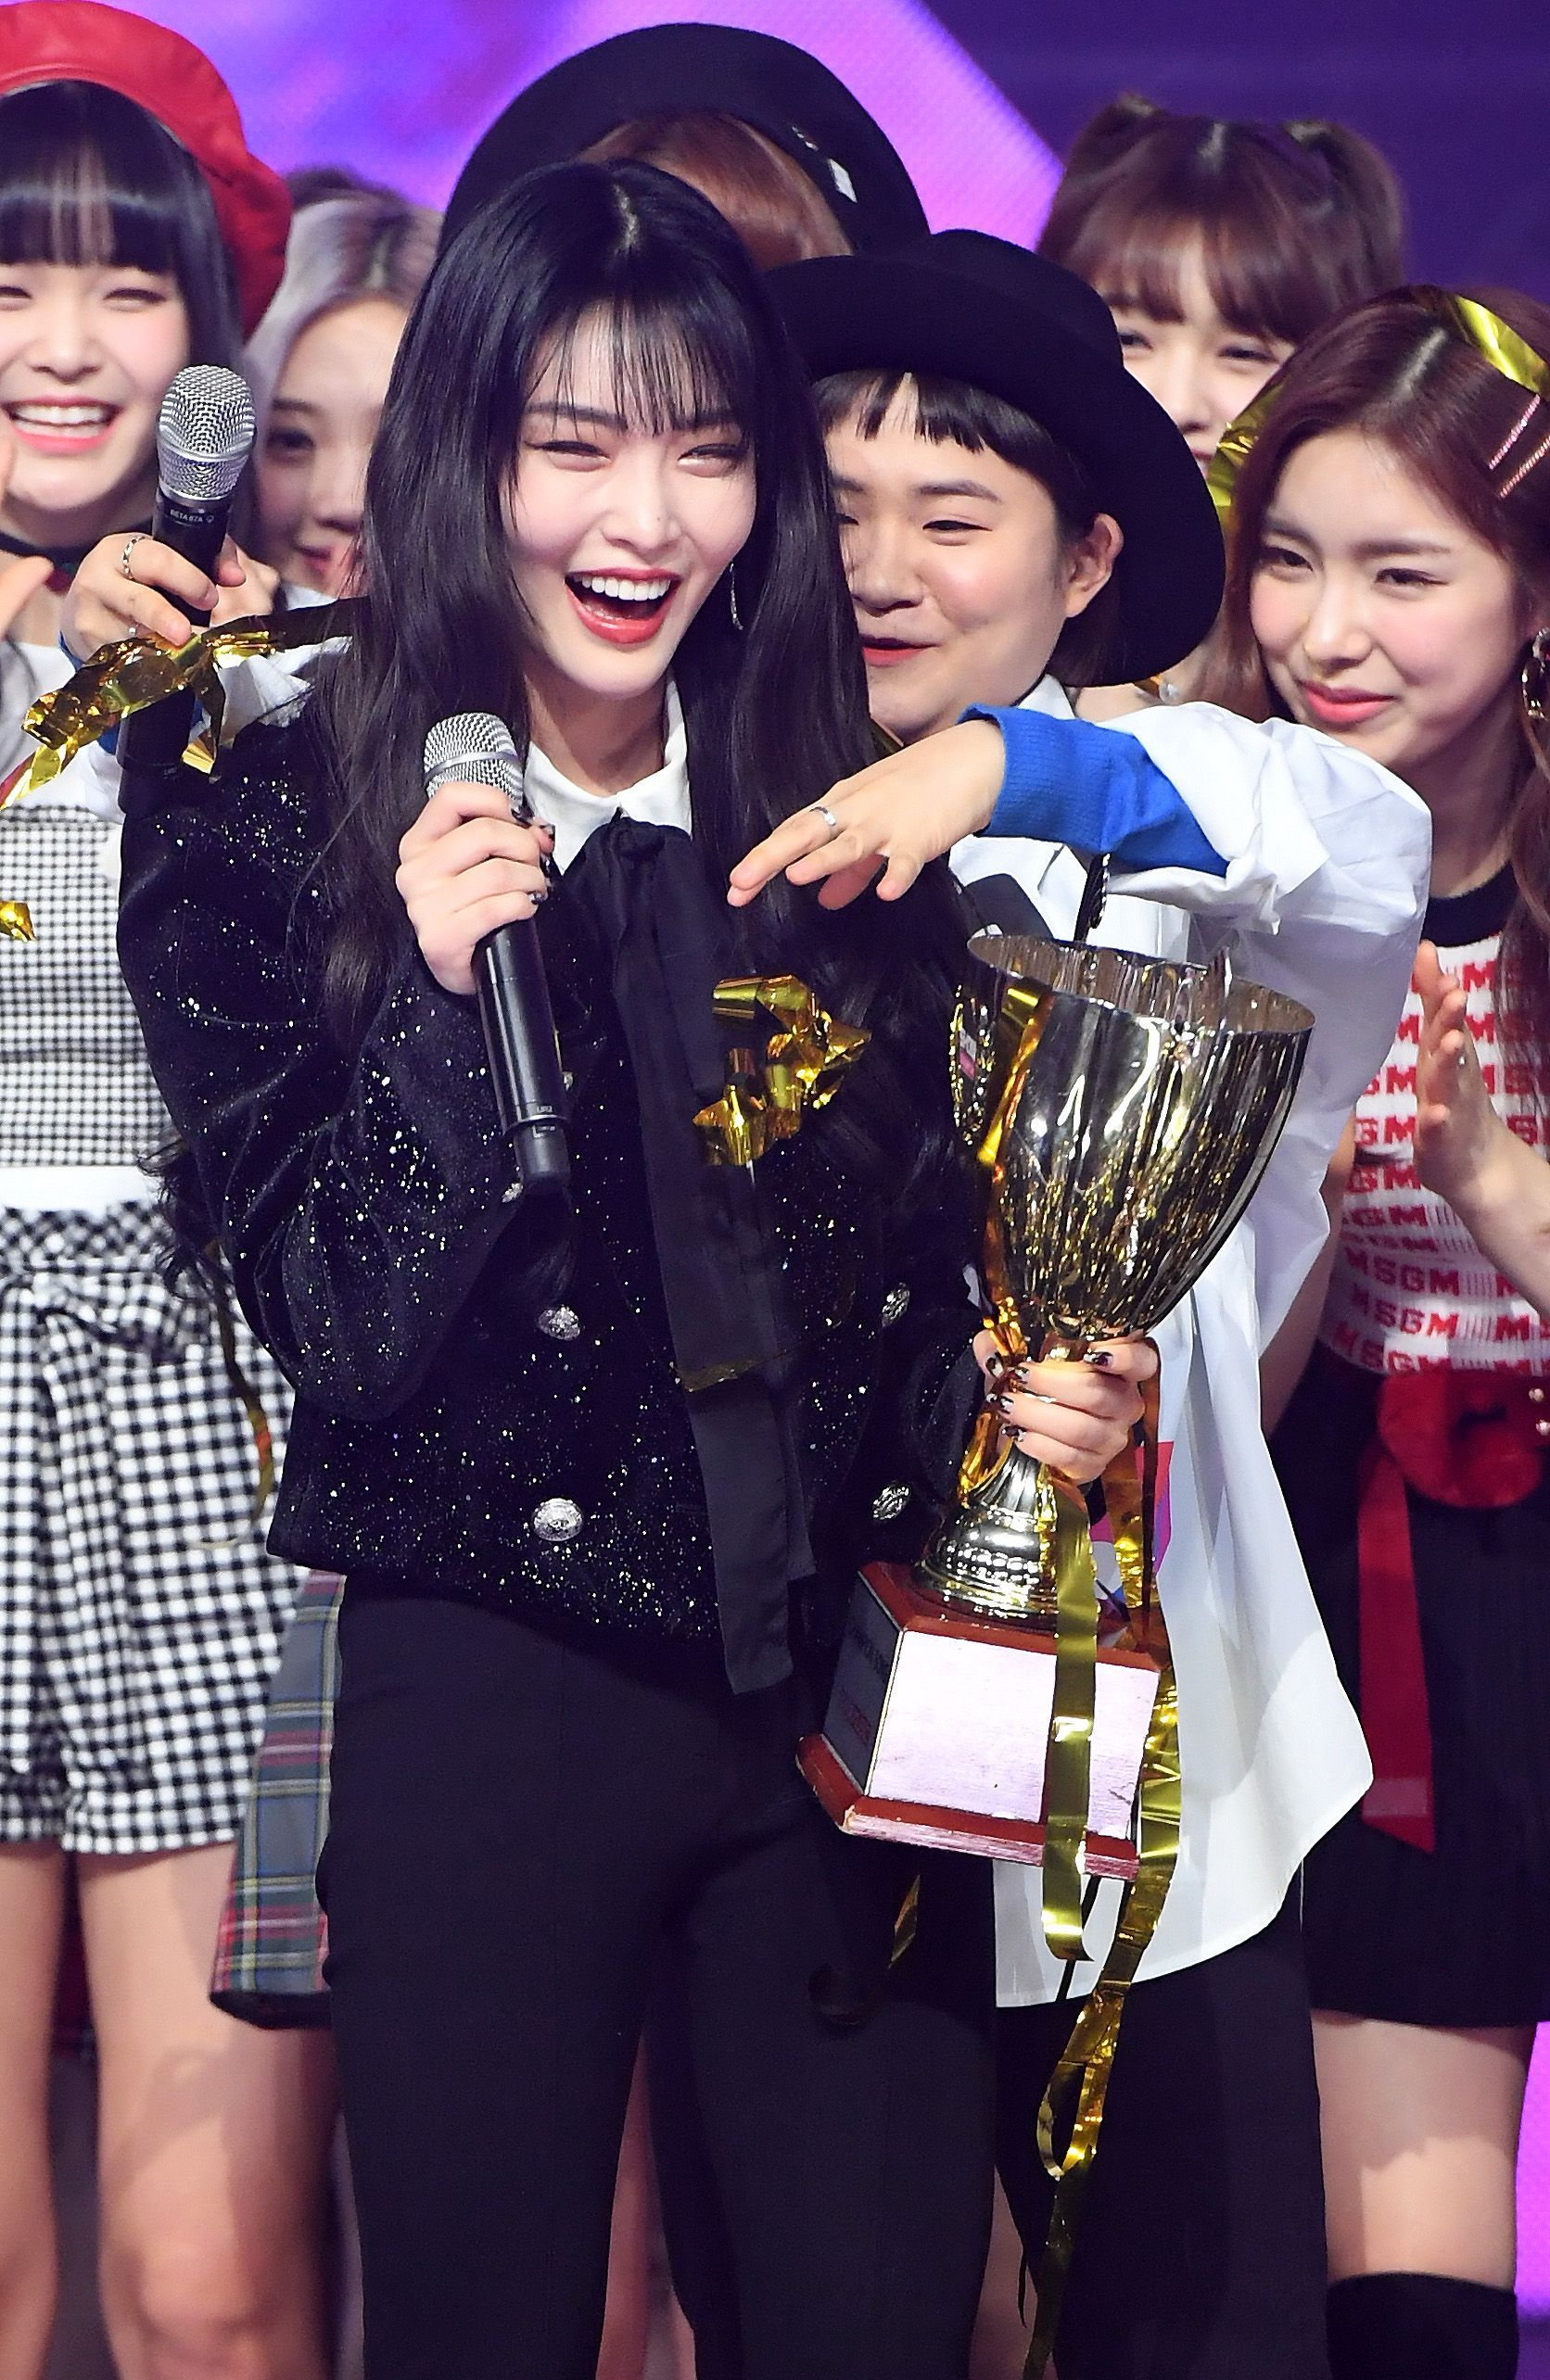 190109 Chungha 1st Win At Show Champion Black Pink Leader Girl Group Singer